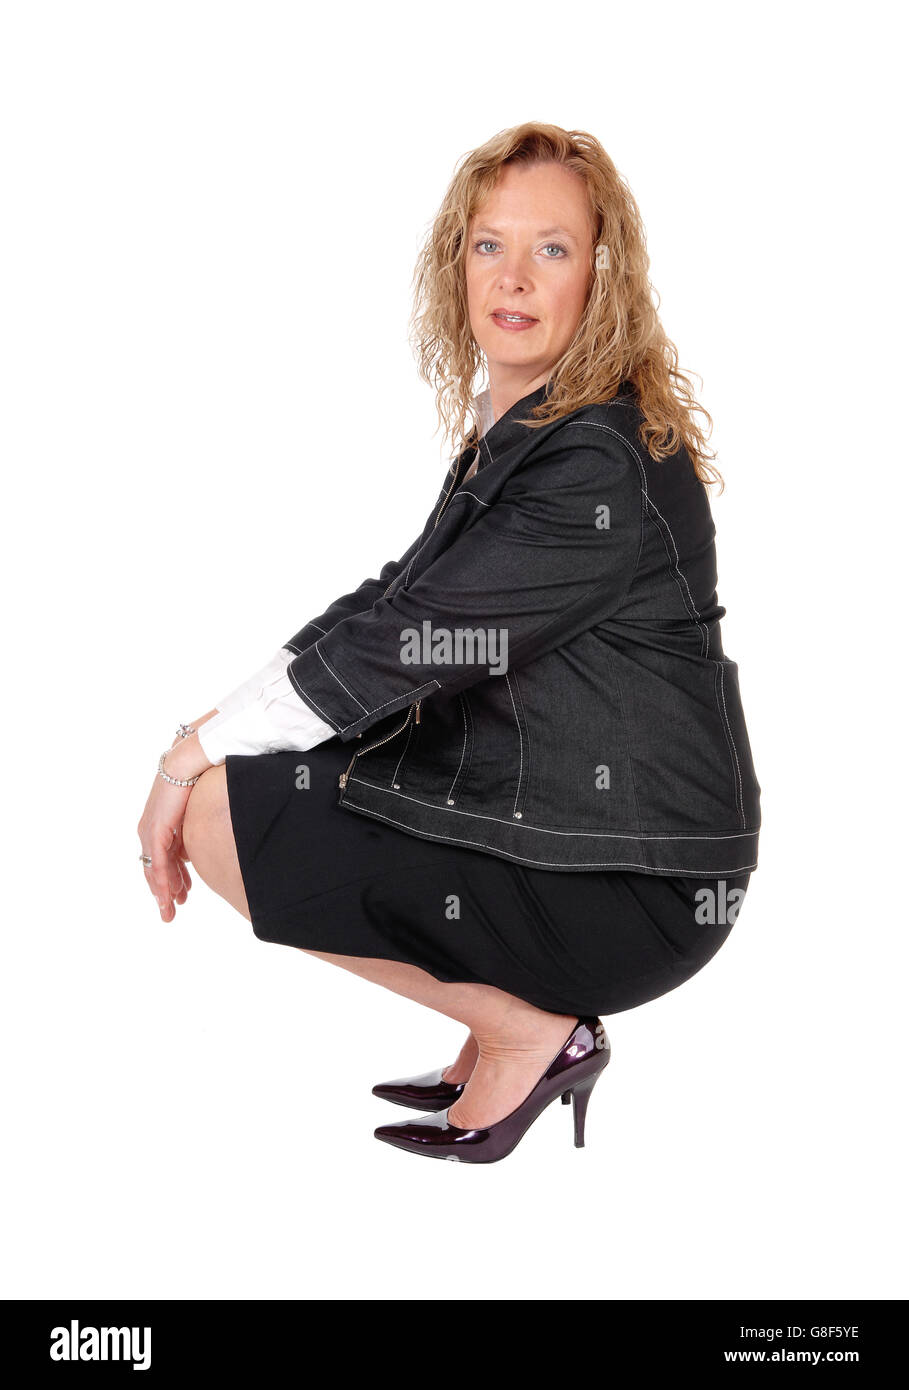 A beautiful blond woman crouching on the floor in a black skirt and navy jacket, isolated for white background. - Stock Image